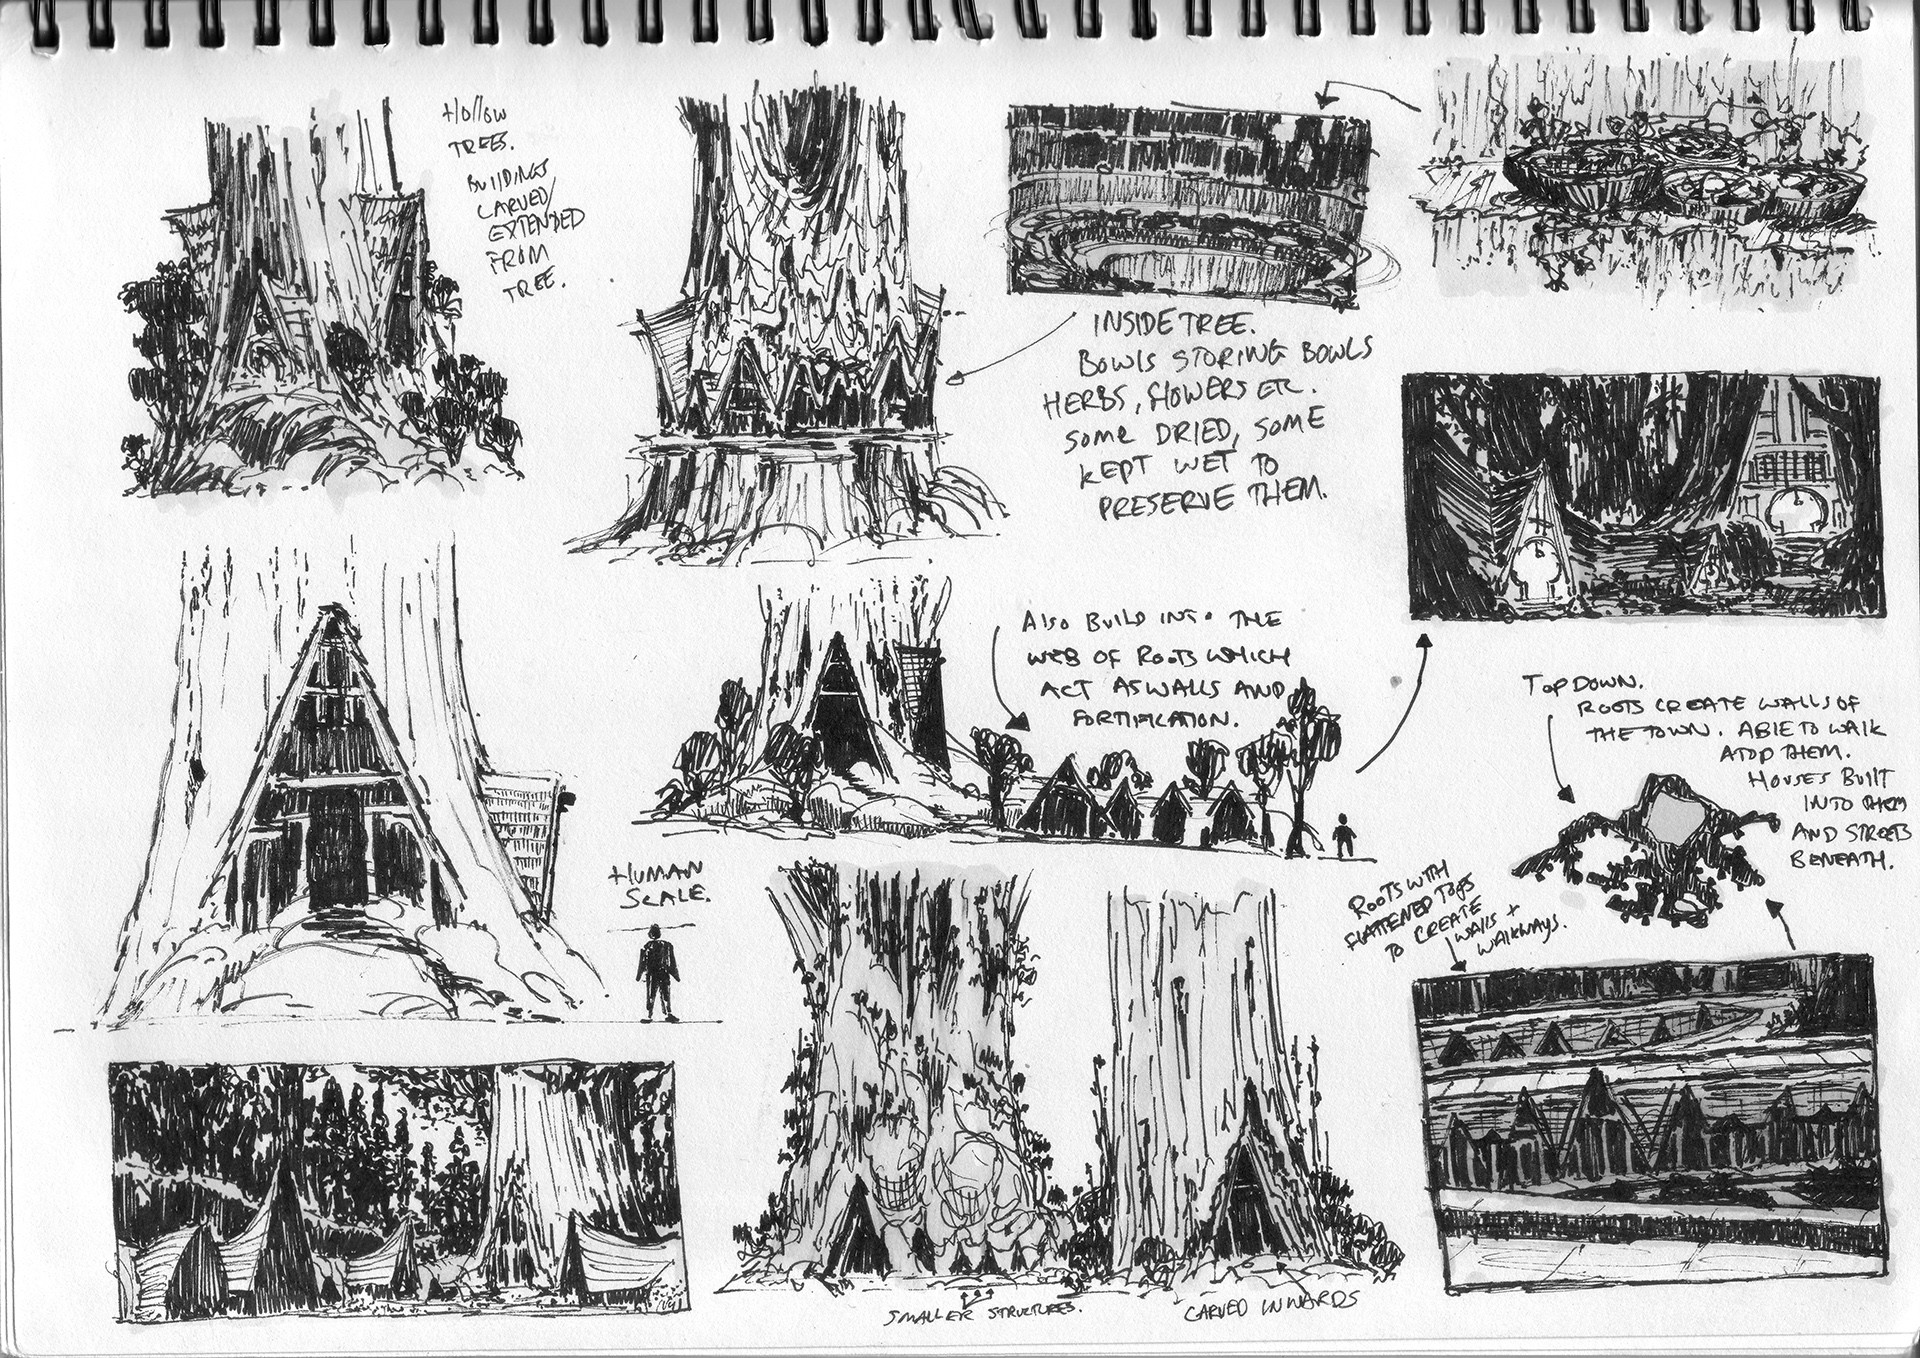 Jack eaves marker sketches 07